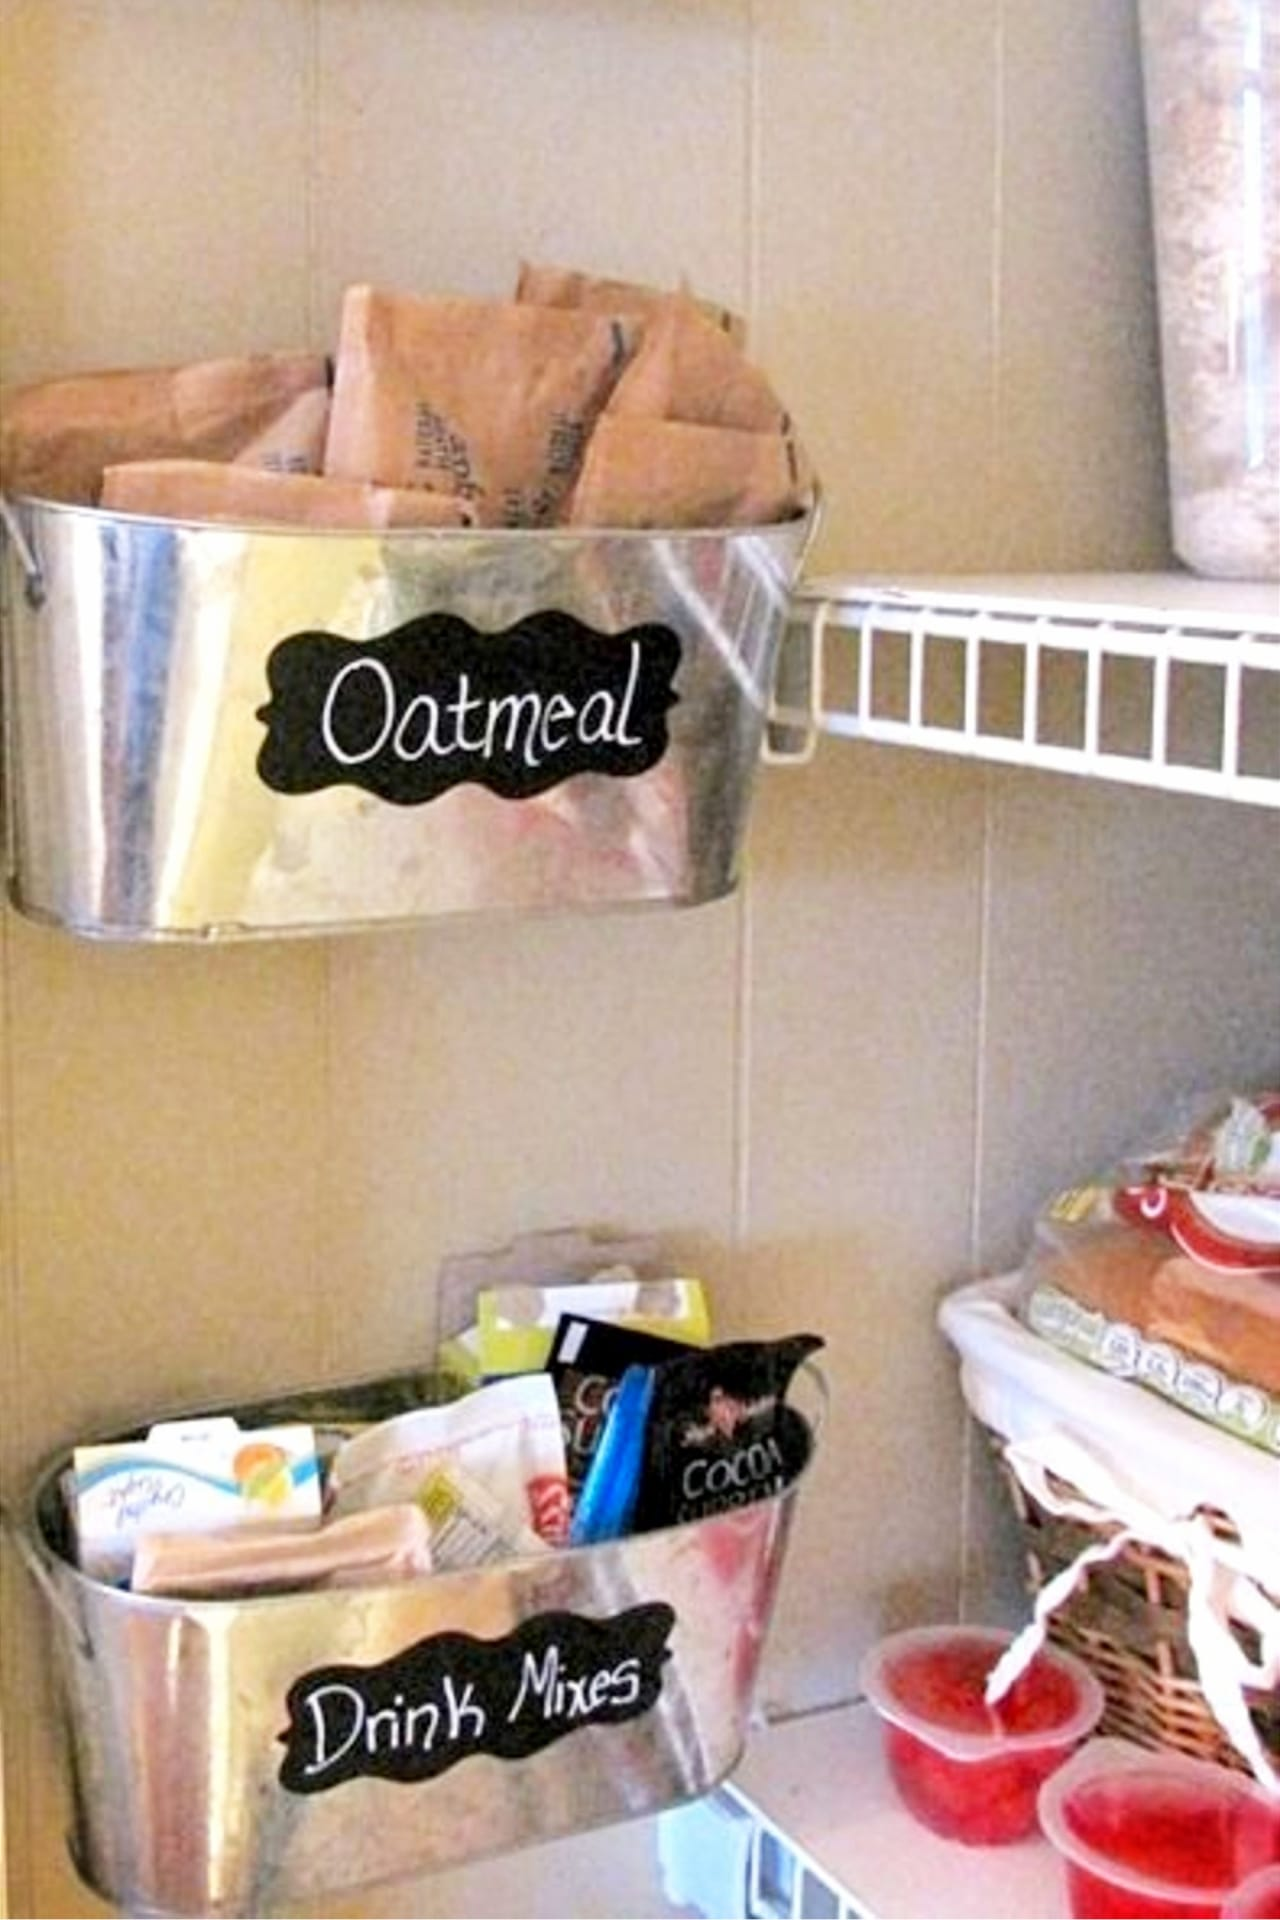 cheap pantry organizing ideas - Organize with household items, dollar tree items and everyday objects